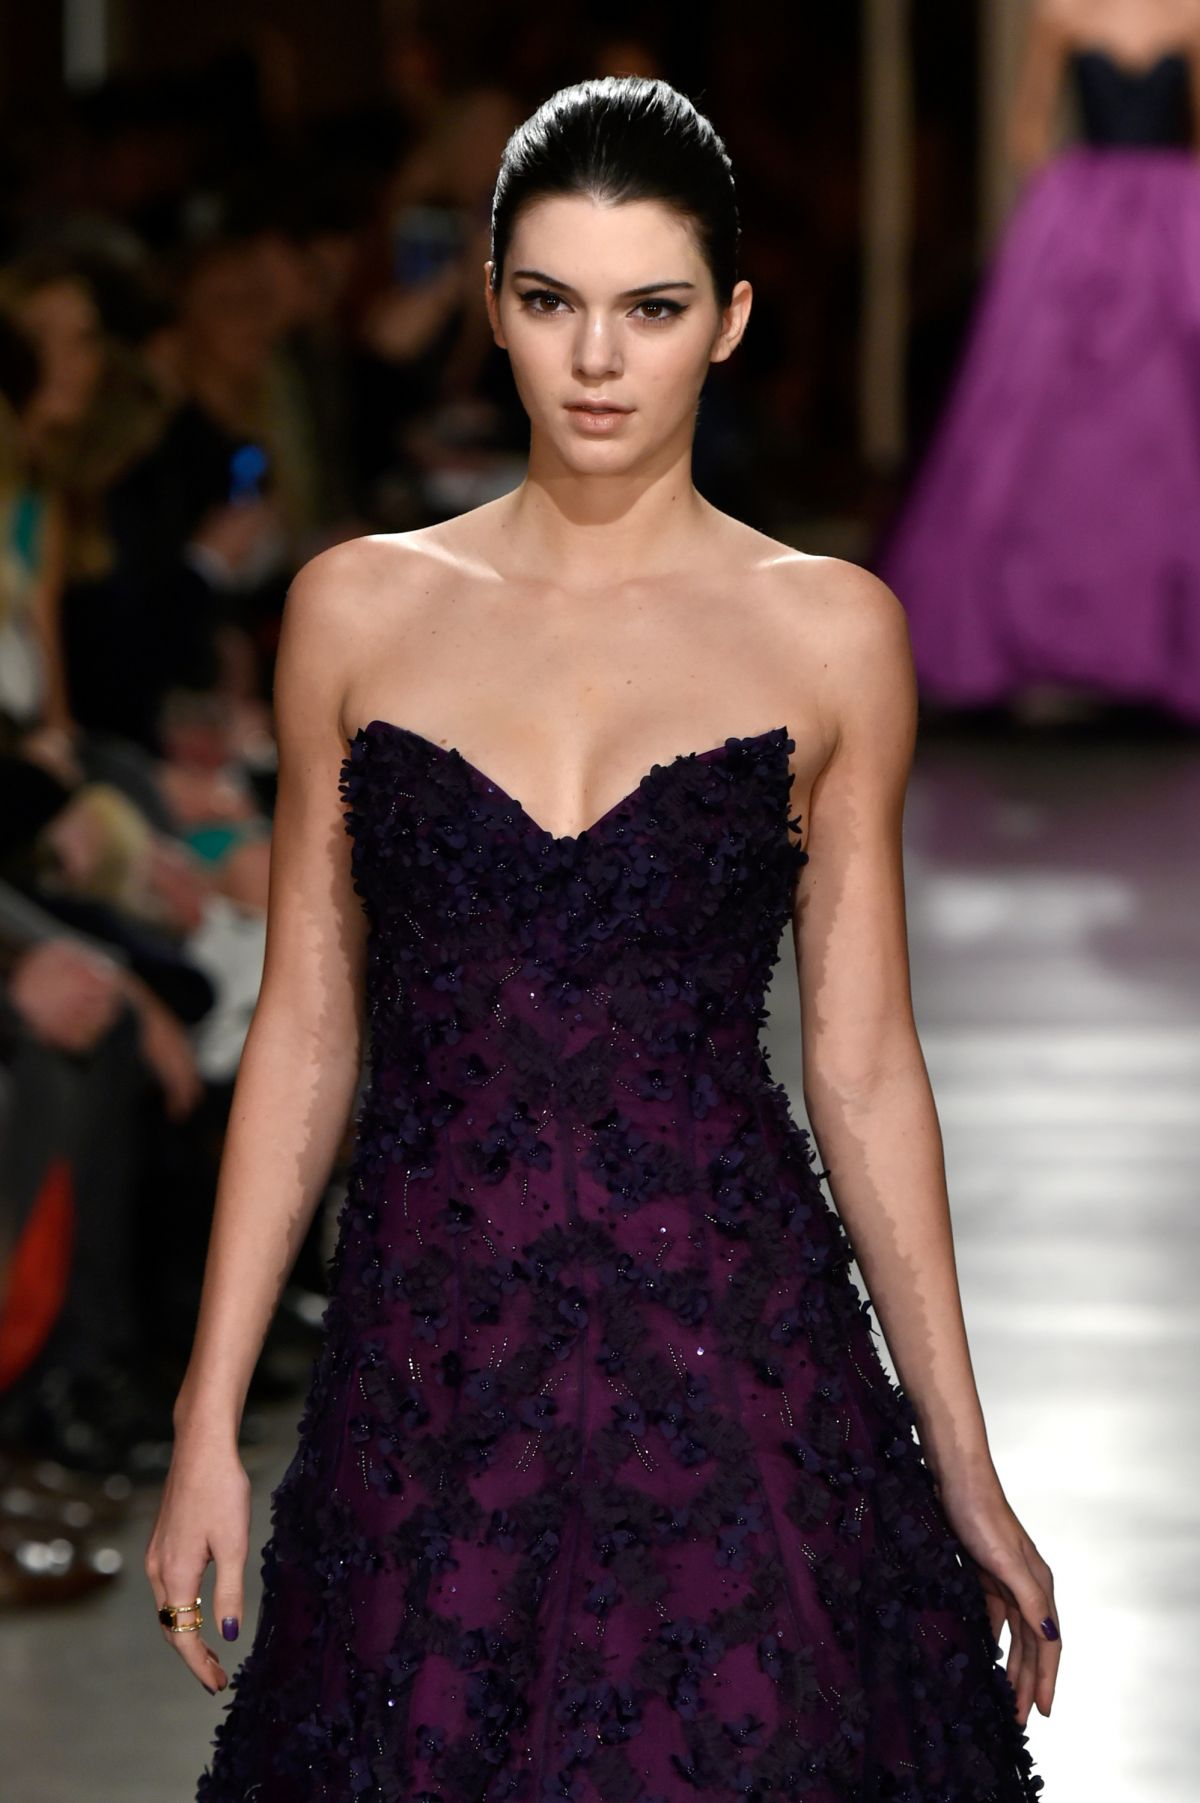 Kendall Jenner At Oscar De La Renta Fashion Show In New York Hawtcelebs